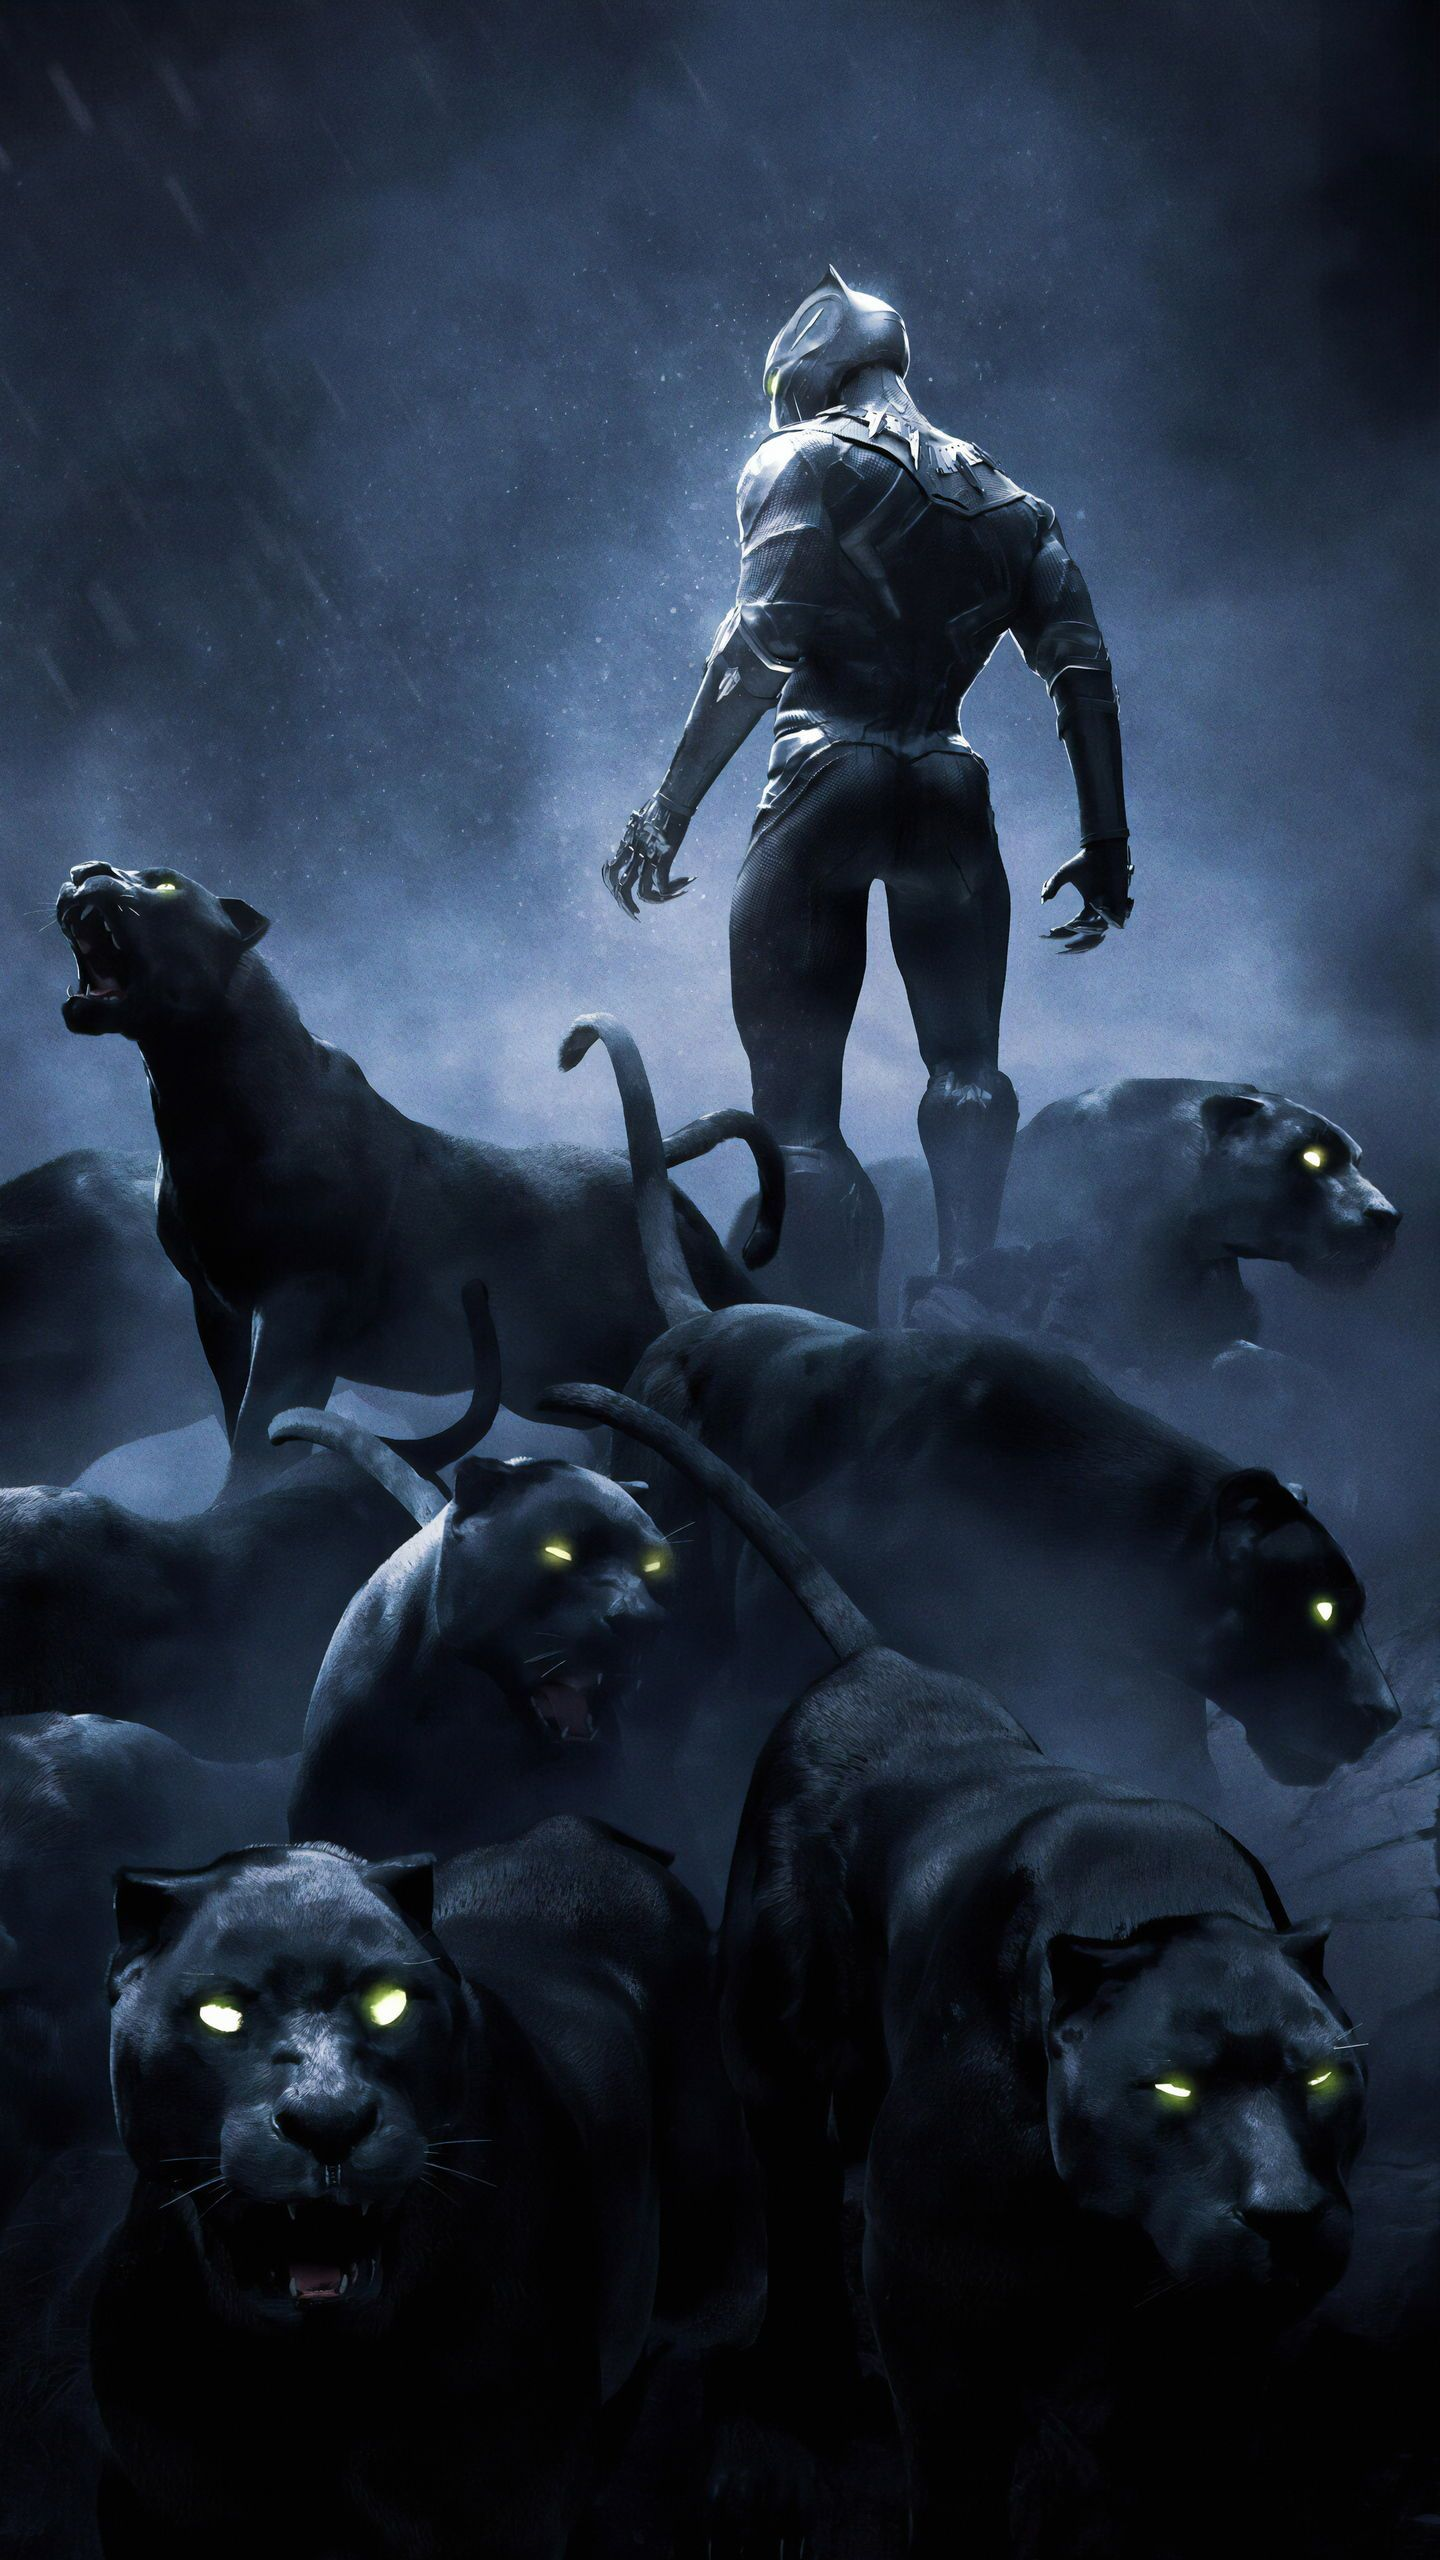 Download Hd Movie Wallpapers Poster Wallpaper Hd Iphone Desktop Popular Marvel Dc Downloa Black Panther Marvel Superhero Wallpaper Black Panther Art